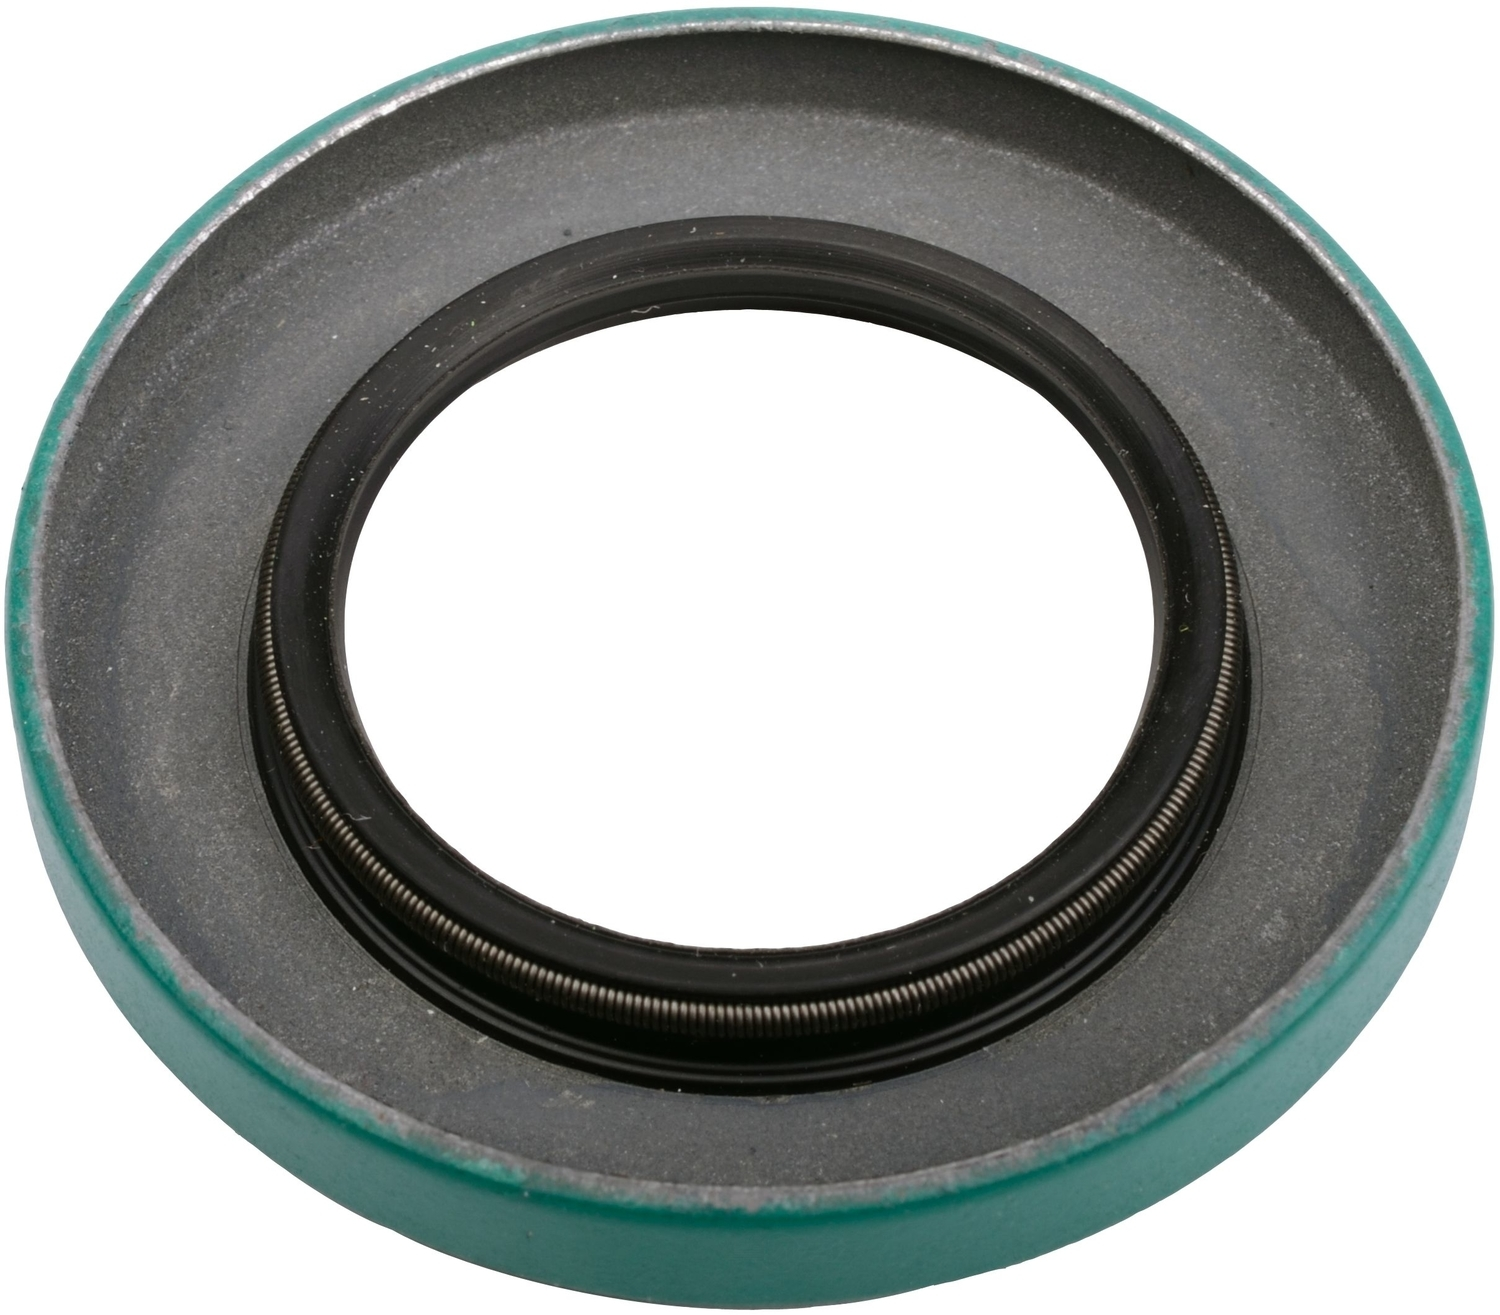 SKF (CHICAGO RAWHIDE) - Manual Trans Input Shaft Seal - SKF 10640